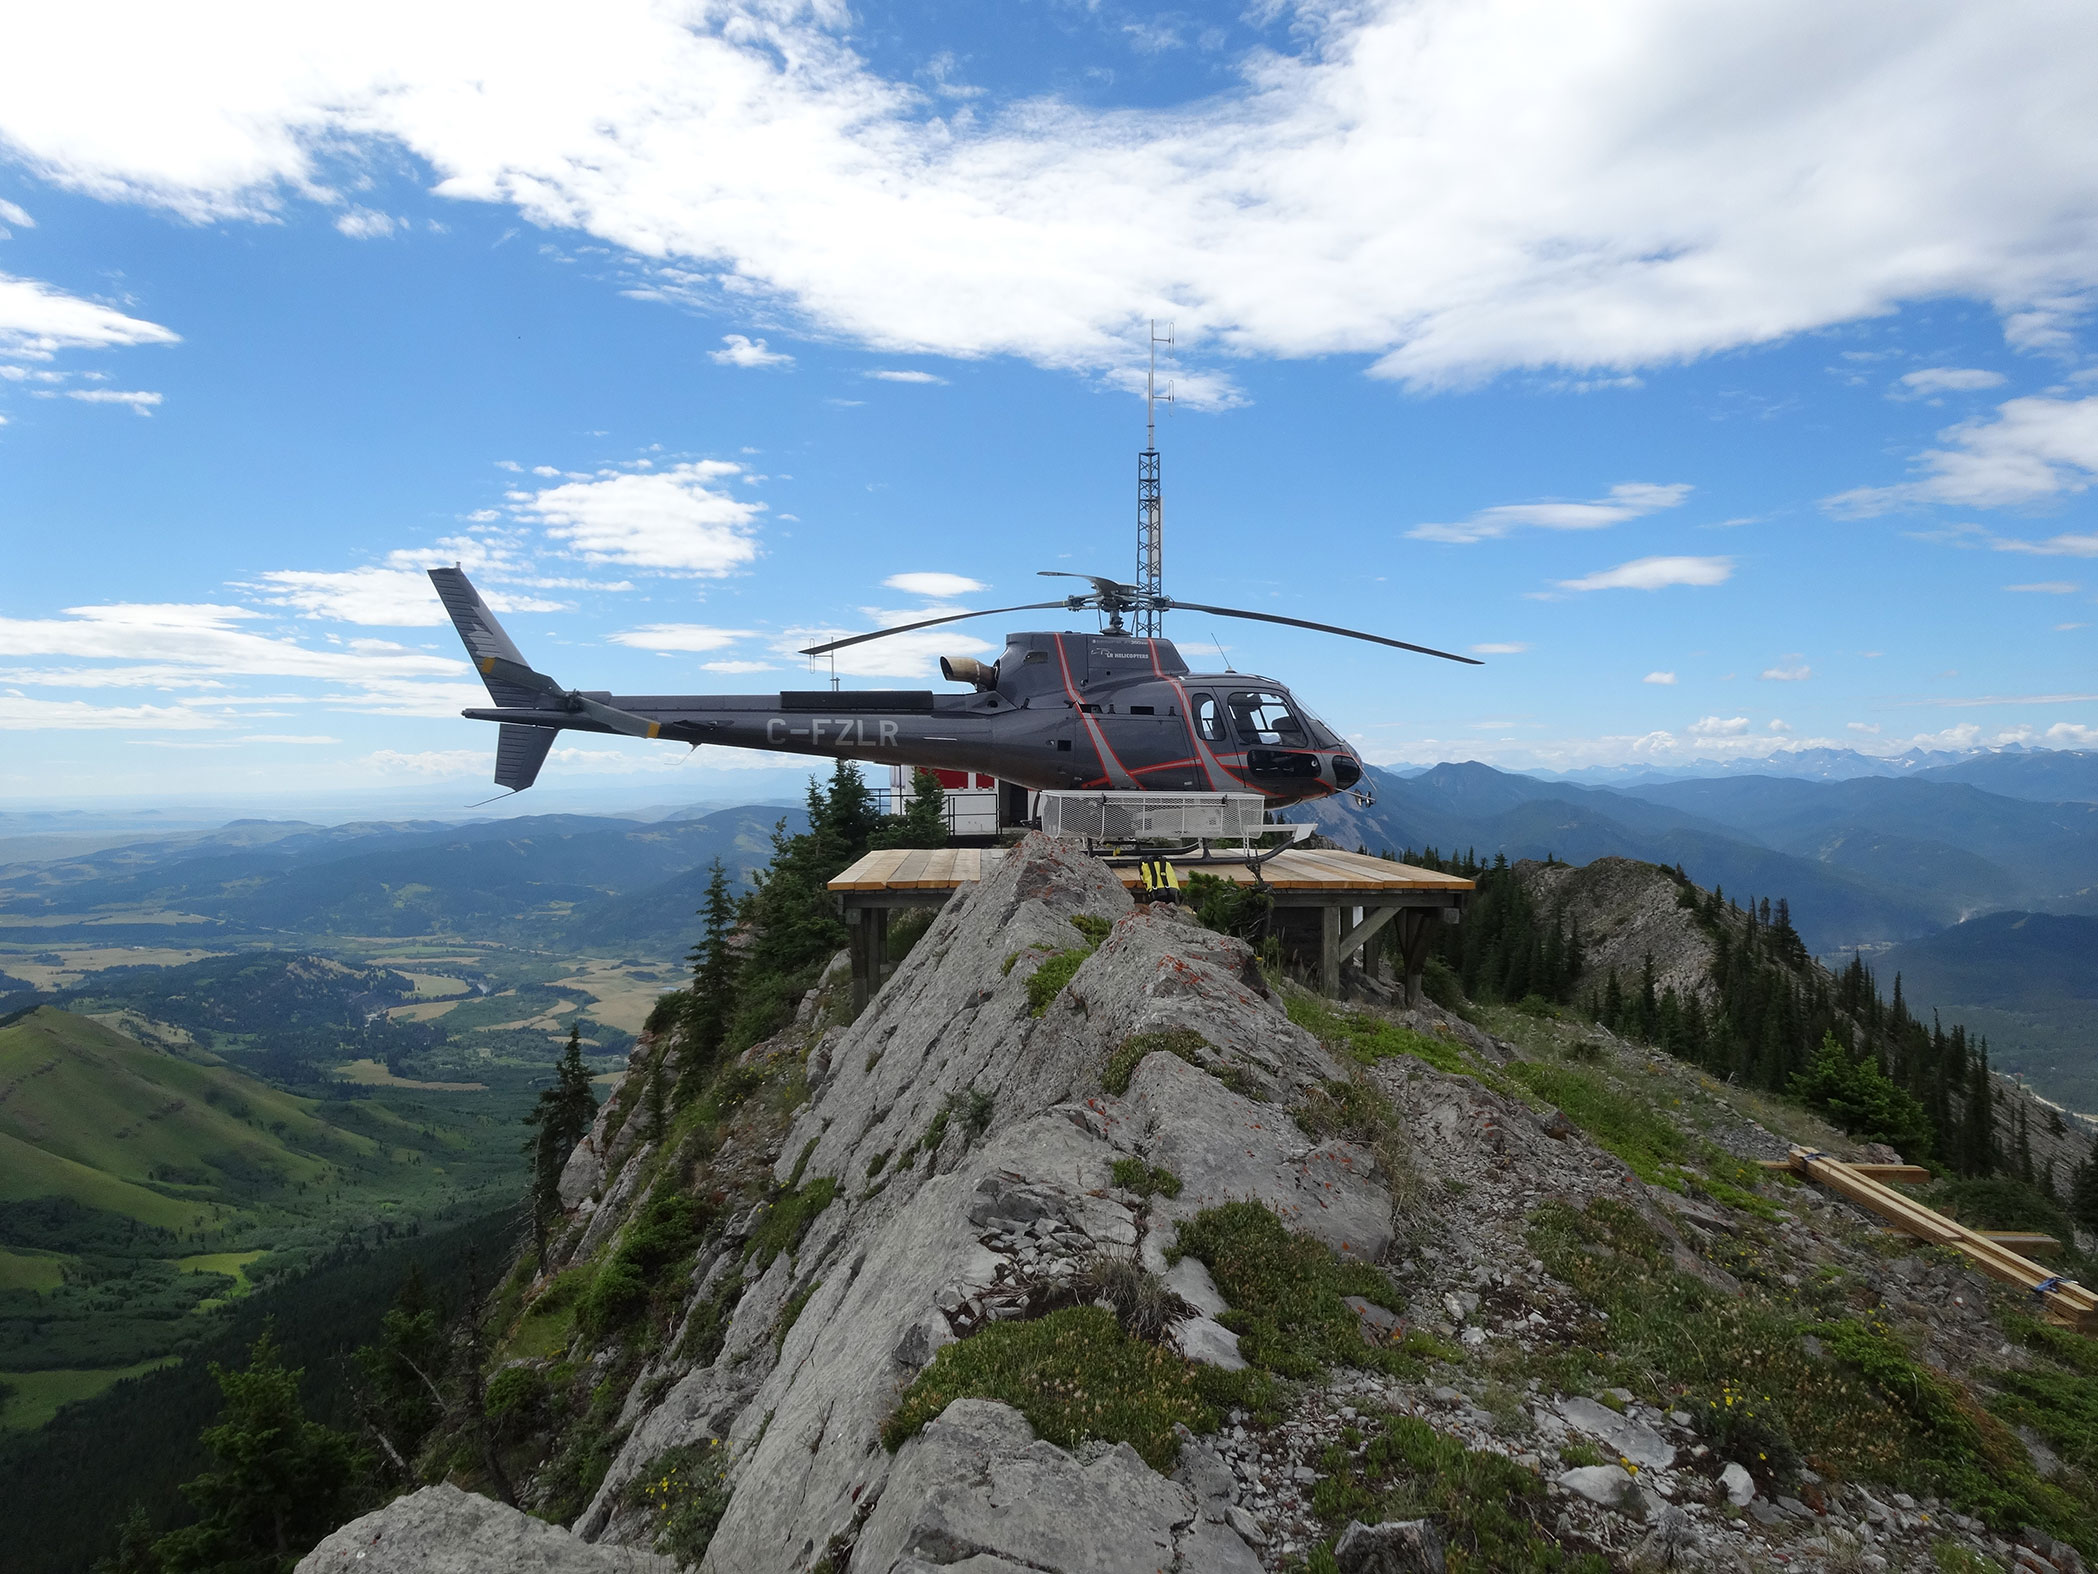 A helicopter flying over a mountain